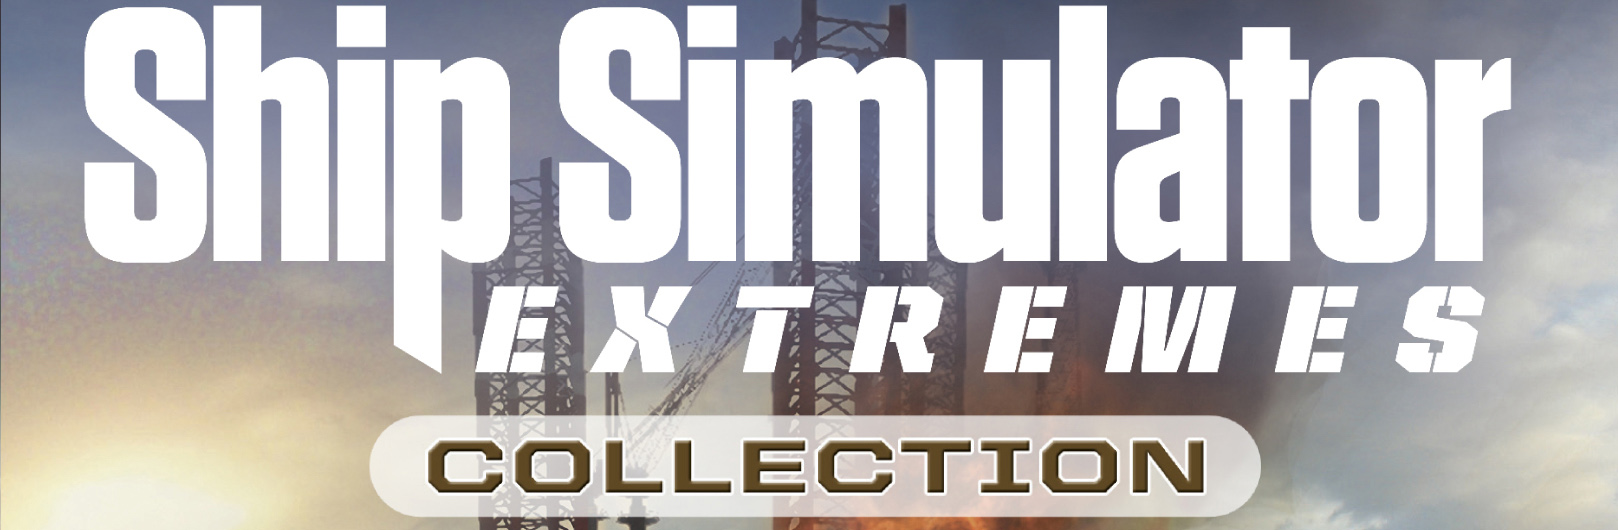 Ship Simulator Extremes Collection out next week